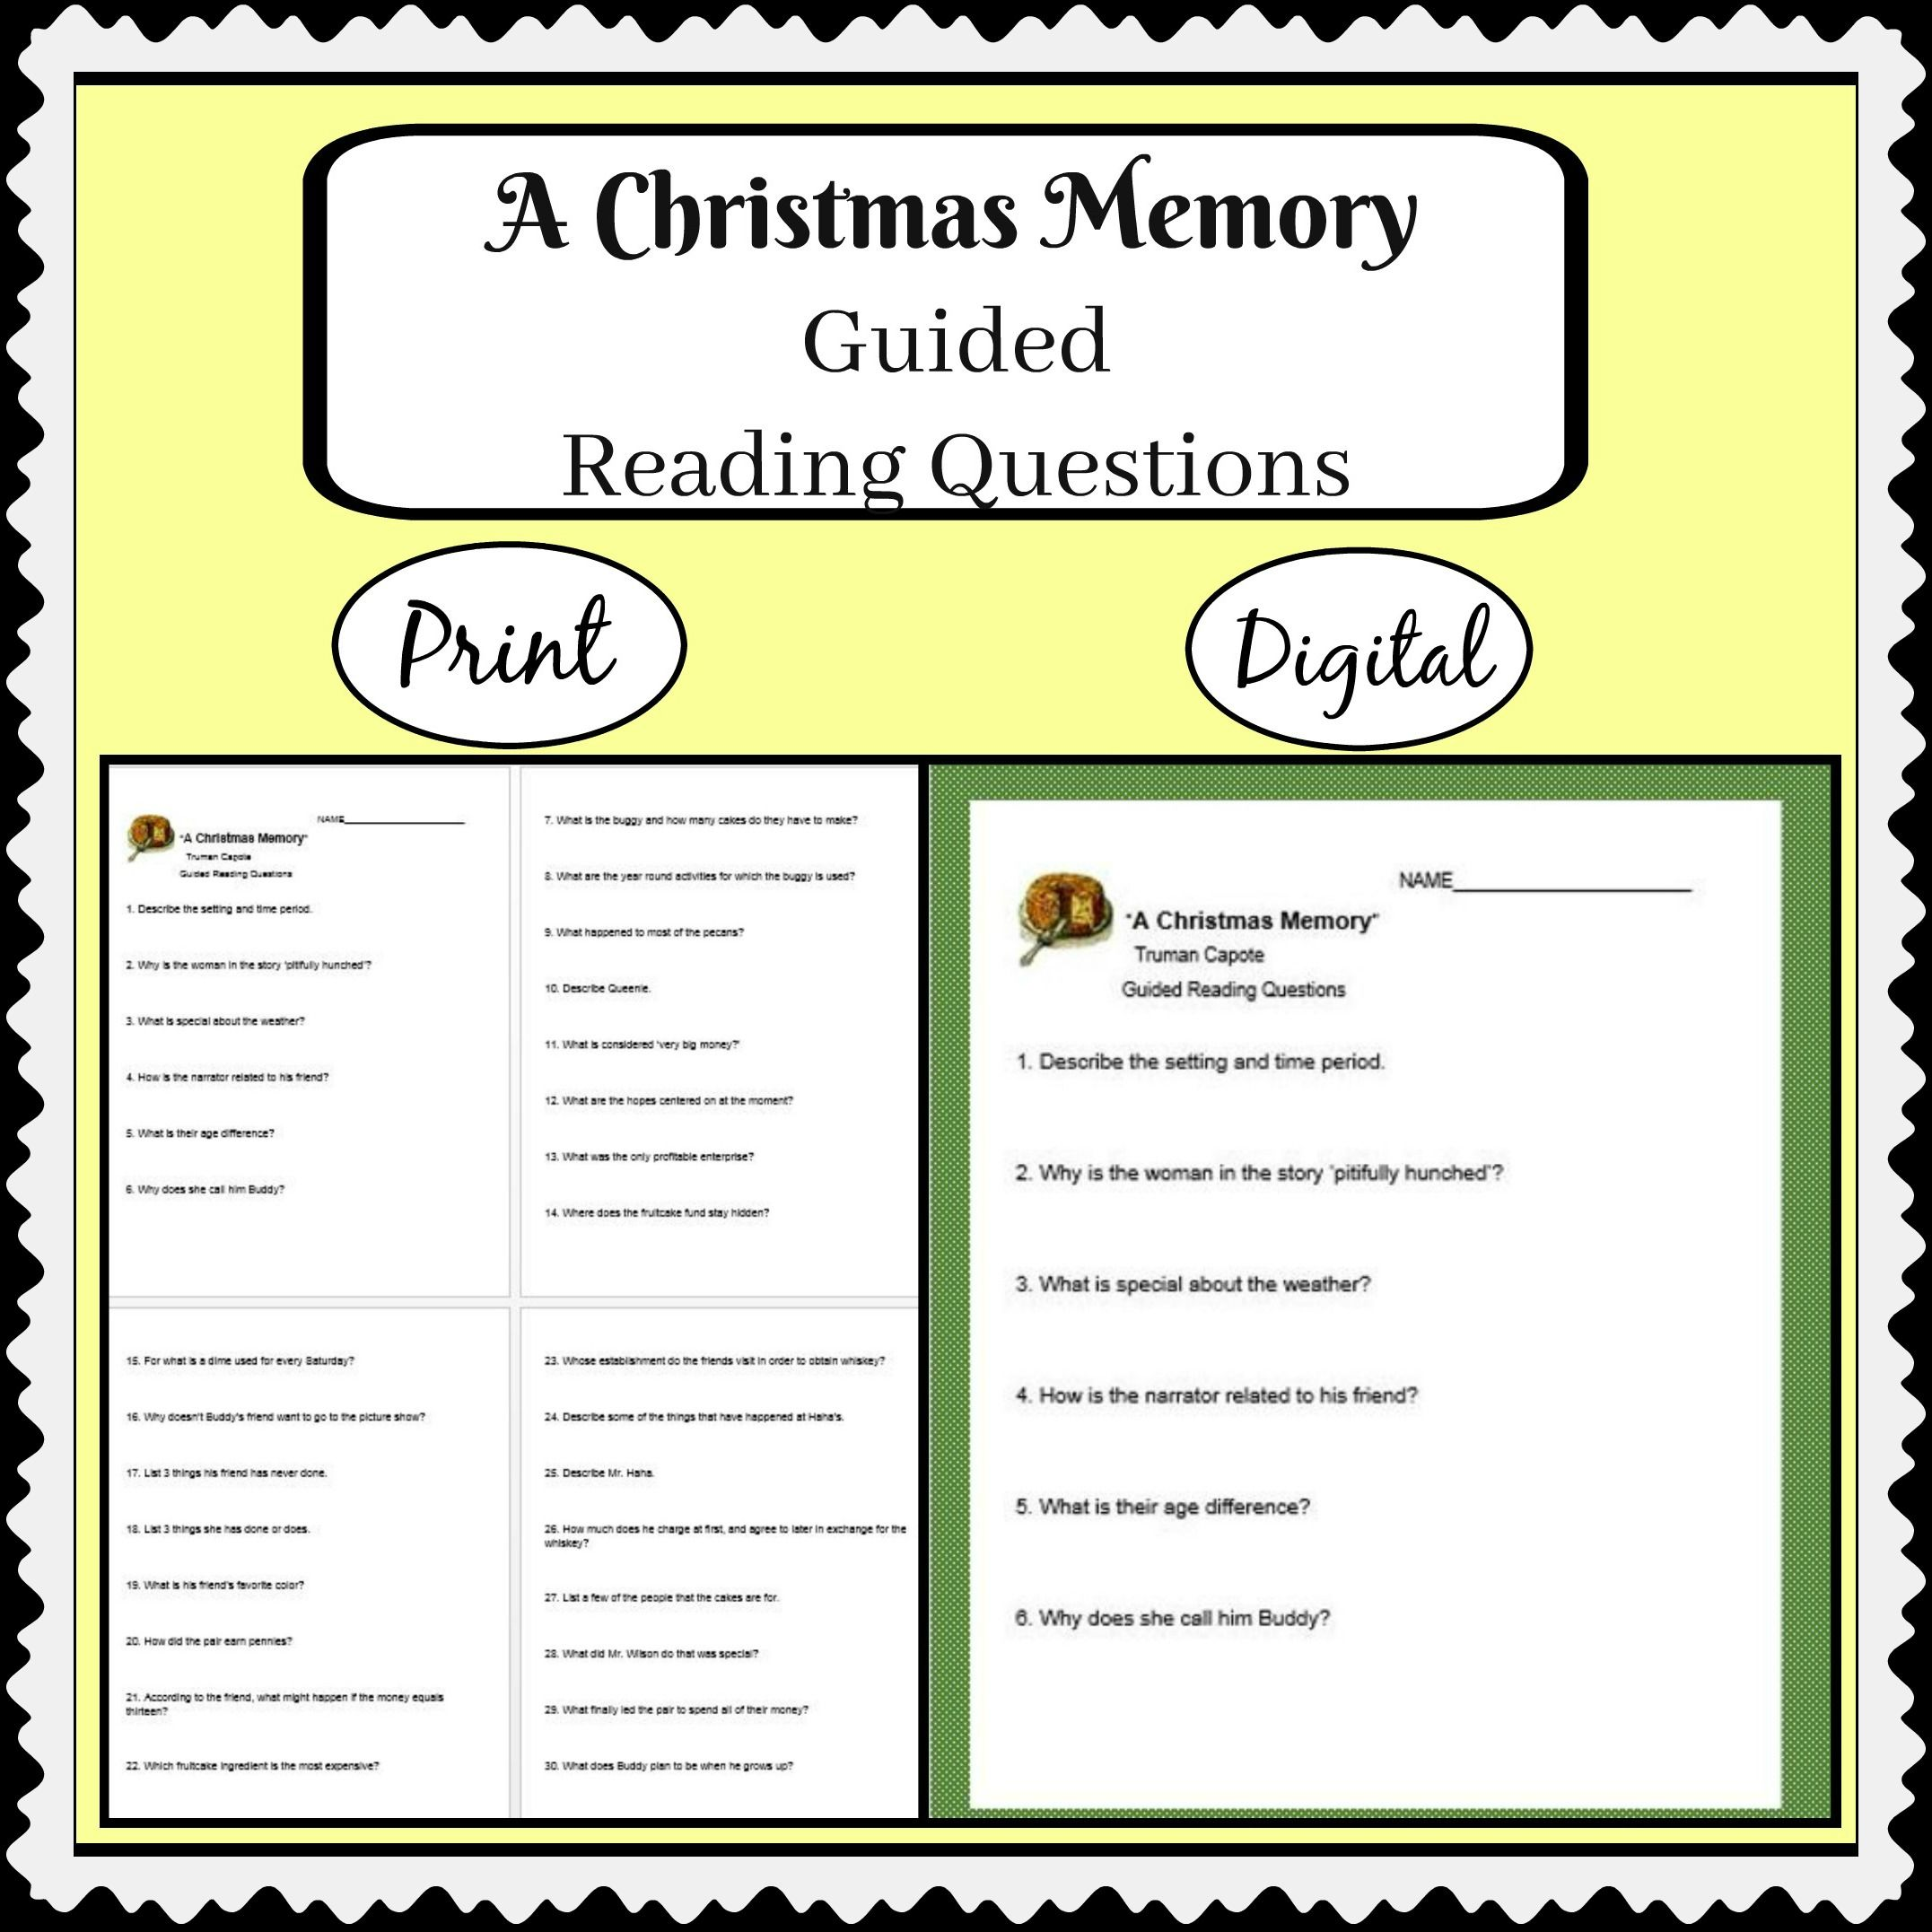 A Christmas Memory by Truman Capote with guided reading questions ...